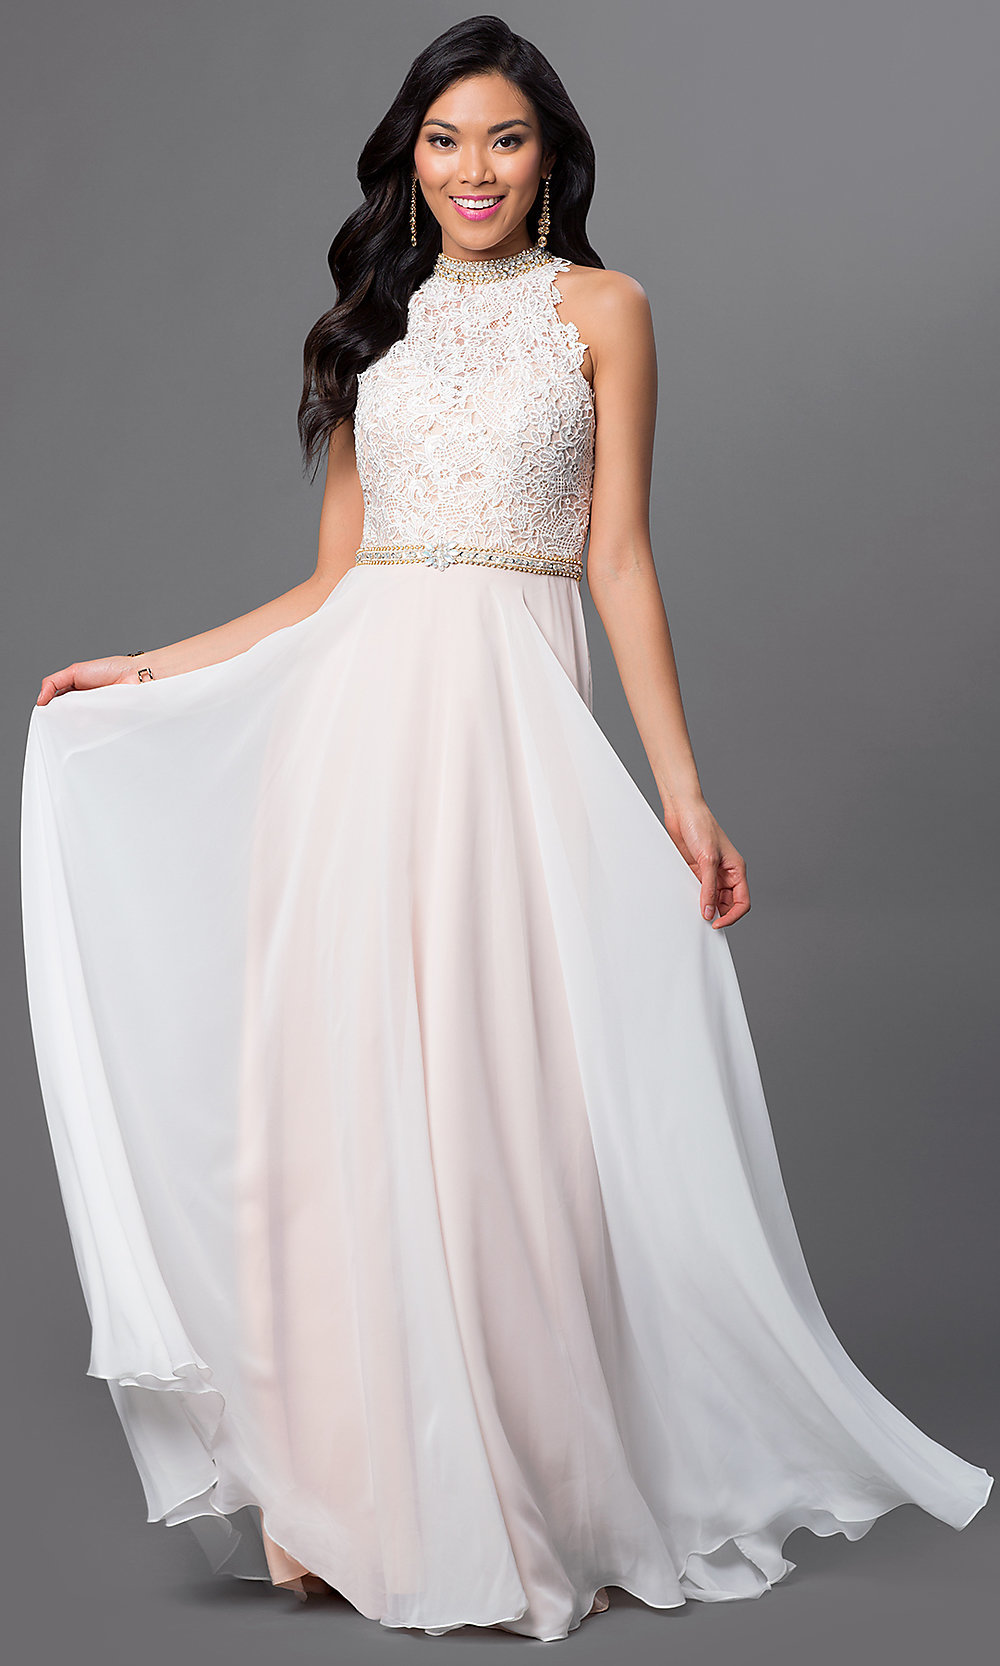 White dress chiffon - Hover To Zoom